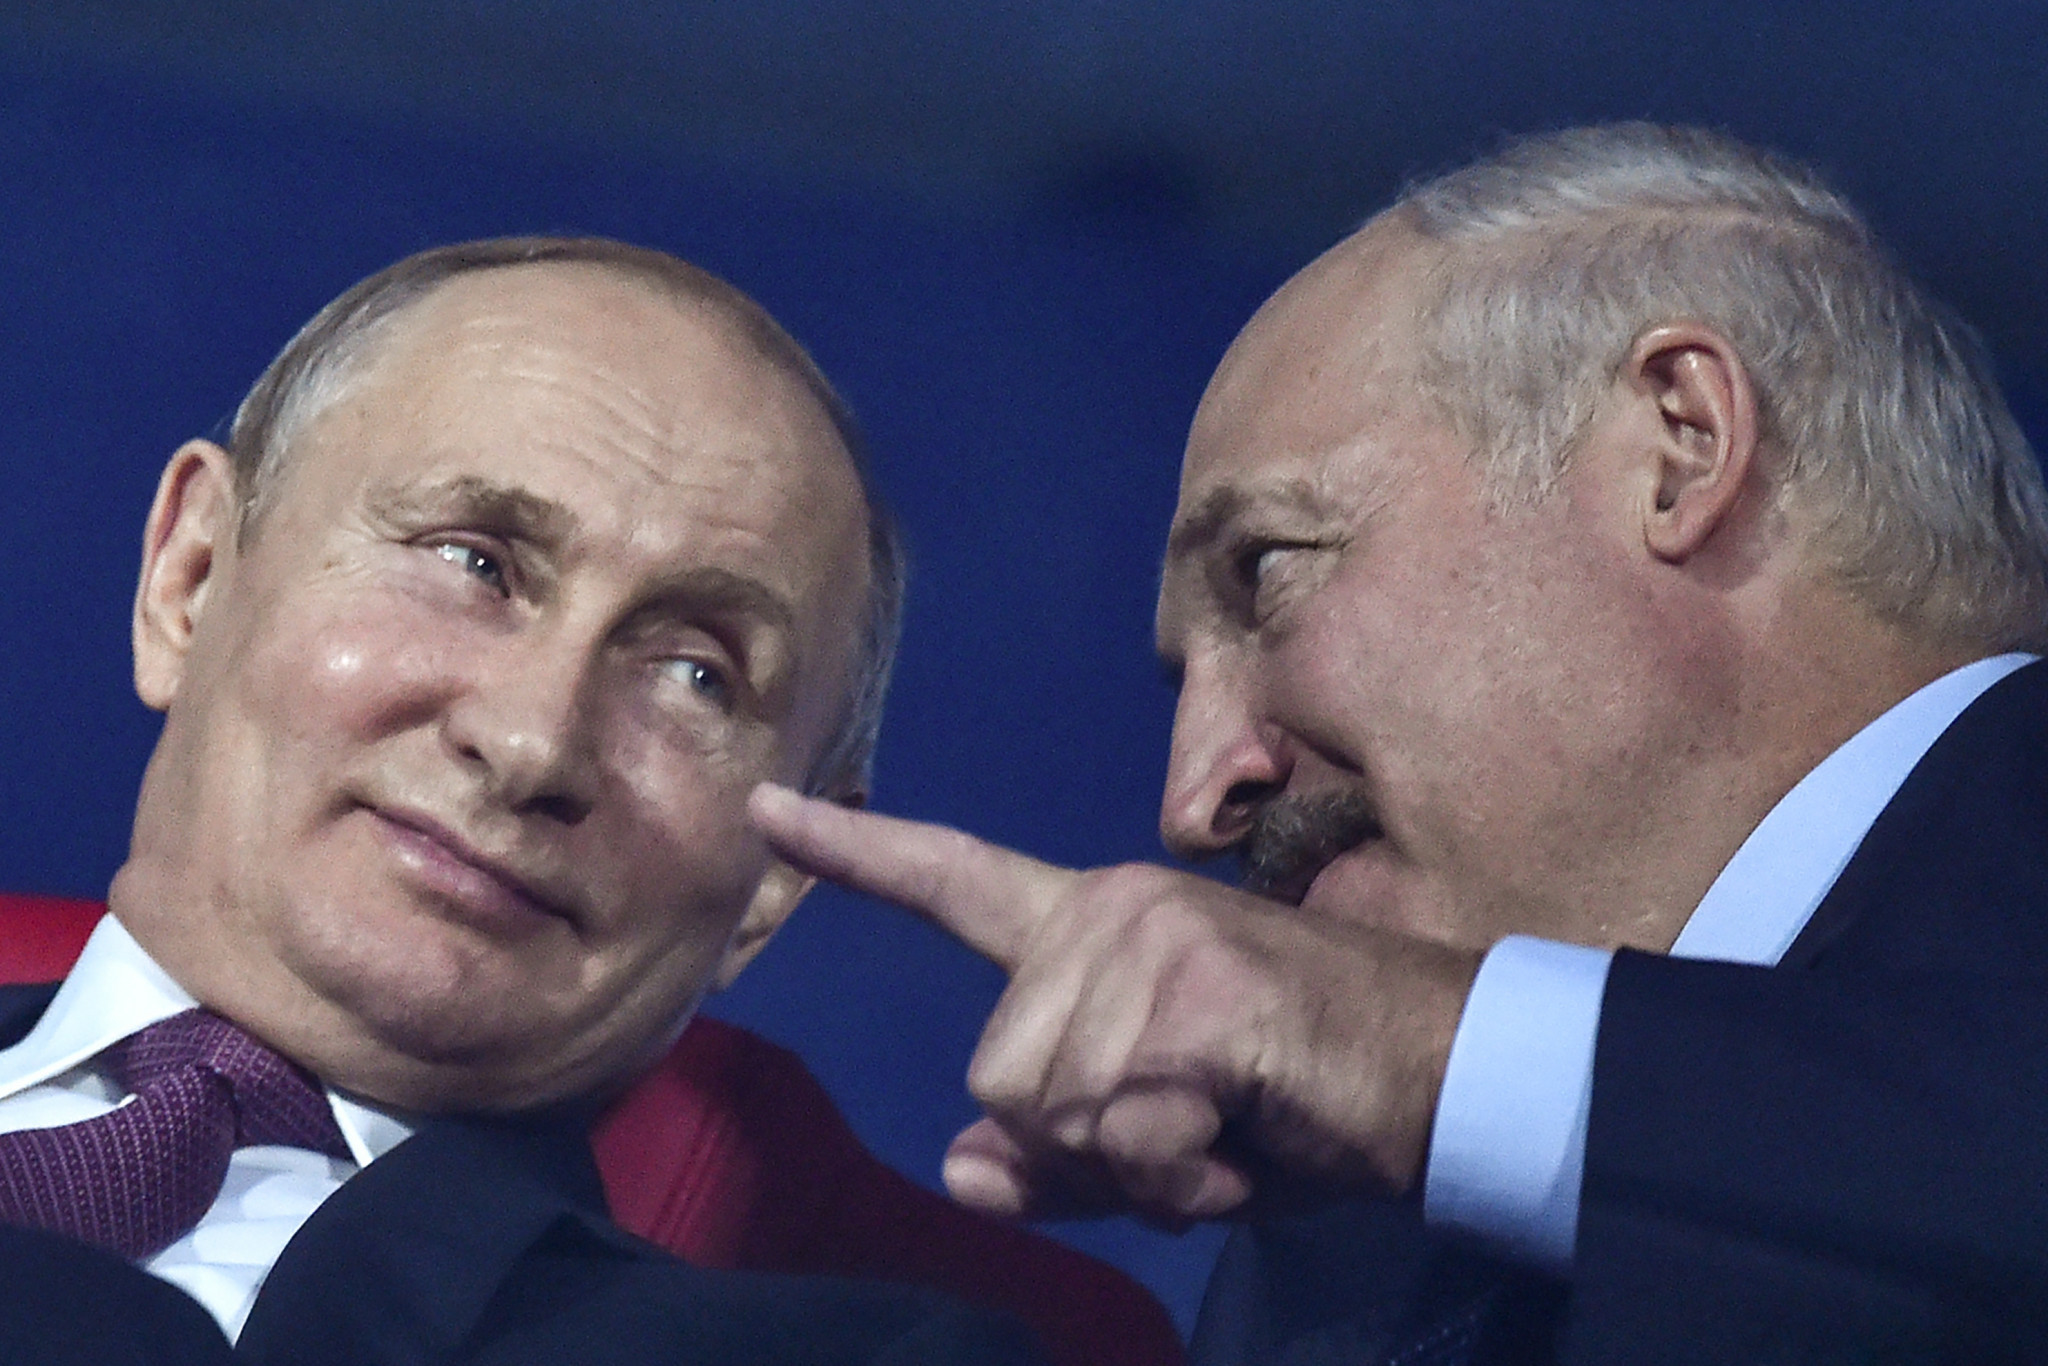 Vladimir Putin, left, and Alexander Lukashenko, respective Presidents of Russia and Belarus, pictured  at lat night's Closing Ceremony of the Minsk 2019 Games ©Getty Images